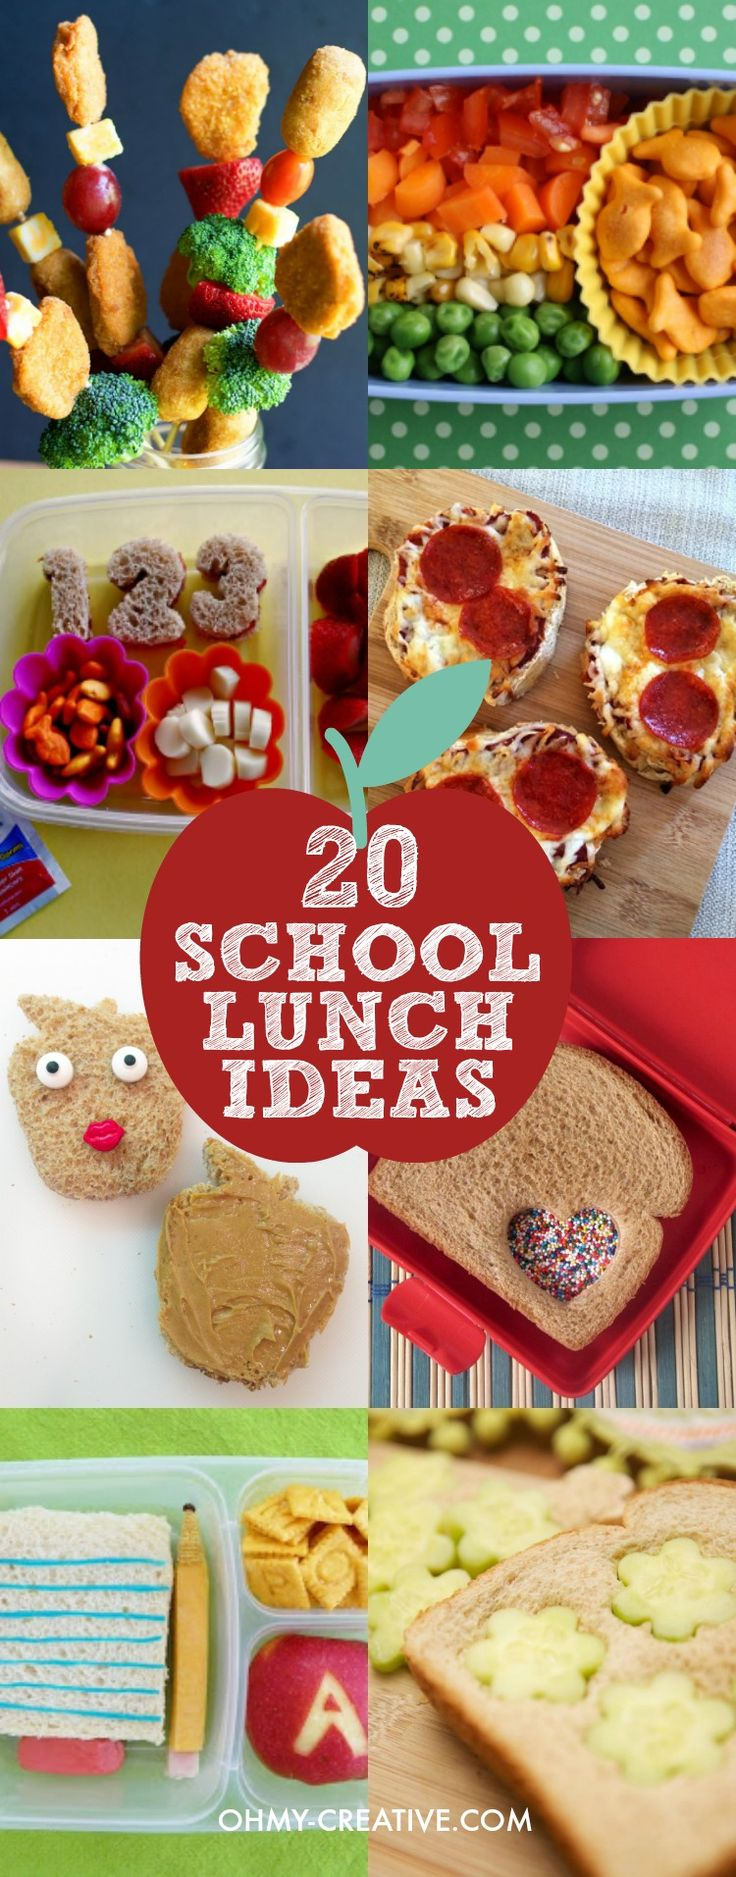 Here are 20 Creative School Lunch Ideas that will sure to be kid-pleasers. As parents, we like the kids to have healthy school lunches!